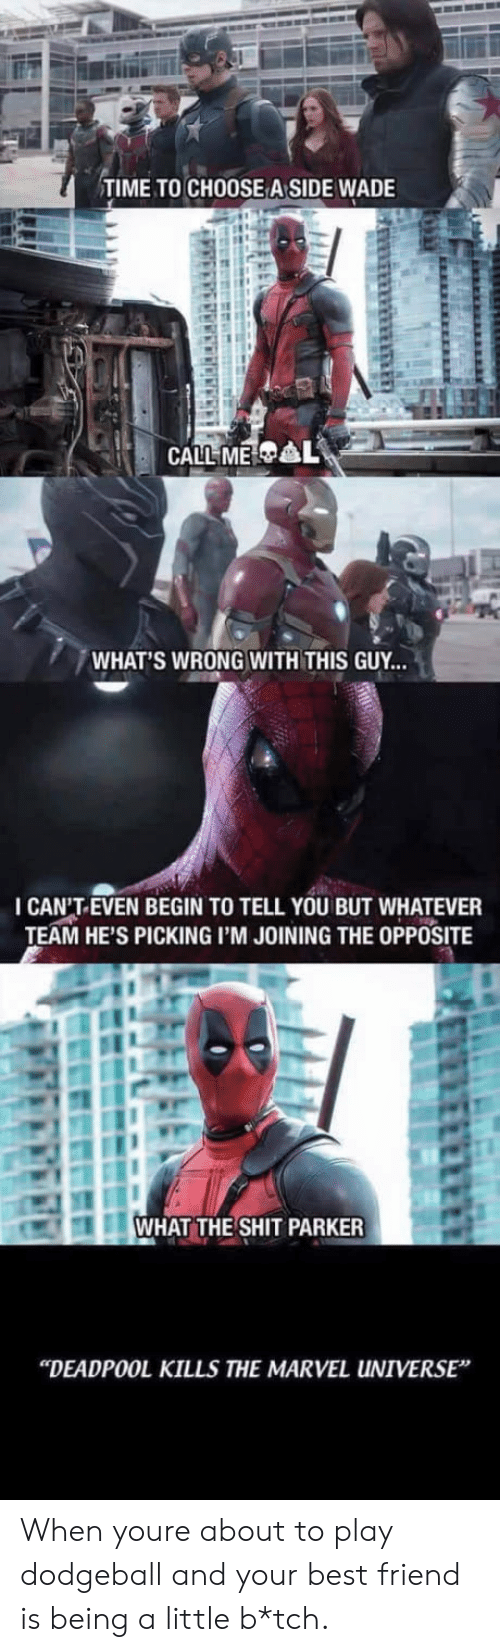 "Whats Wrong: TIME TO CHOOSE A SIDE WADE  WHAT'S WRONG WITH THIS GUY...  I CAN'T.EVEN BEGIN TO TELL YOU BUT WHATEVER  TEAM HE'S PICKING I'M JOINING THE OPPOSITE  WHAT THE SHIT PARKER  ""DEADPOOL KILLS THE MARVEL UNIVERSE When youre about to play dodgeball and your best friend is being a little b*tch."